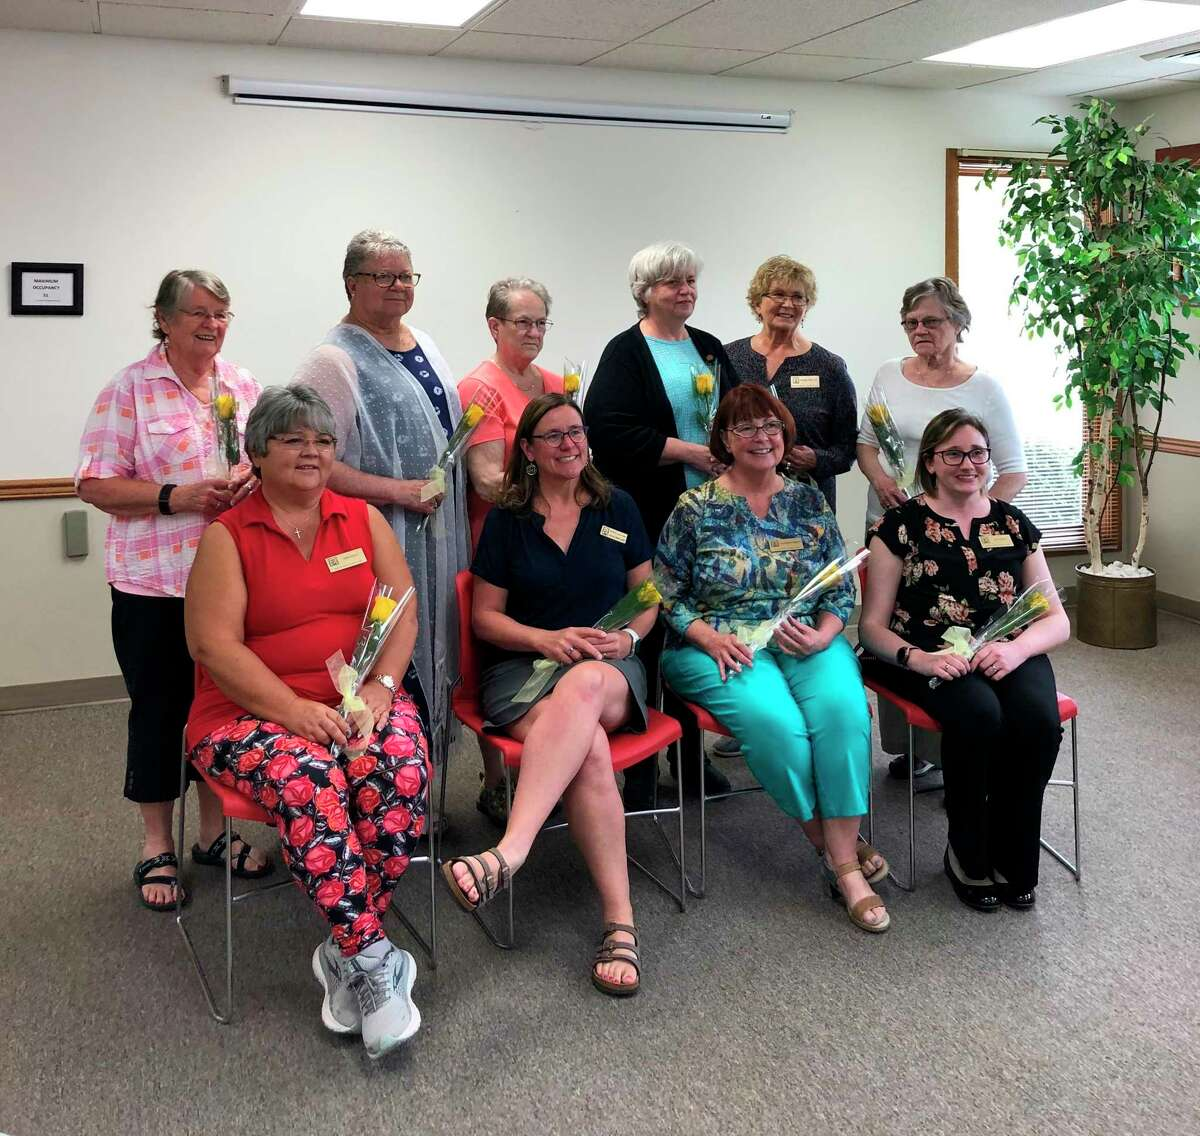 The new officers for Benzie Area Zonta for 2021-2023 include(front row, left to right) Cindy Ooley, 2nd vice president; Julie Bretzke, immediate past president; Rosemary Naulty, president; Tia Cooley,firstvice president; (back row)Linda Nugent, board of directors; Donna Clarke,secretary; Lucy Wright, treasurer; Marianne Fleetwood; Dianna Heller, Vicki Sager, board of directors. (Courtesy Photo)